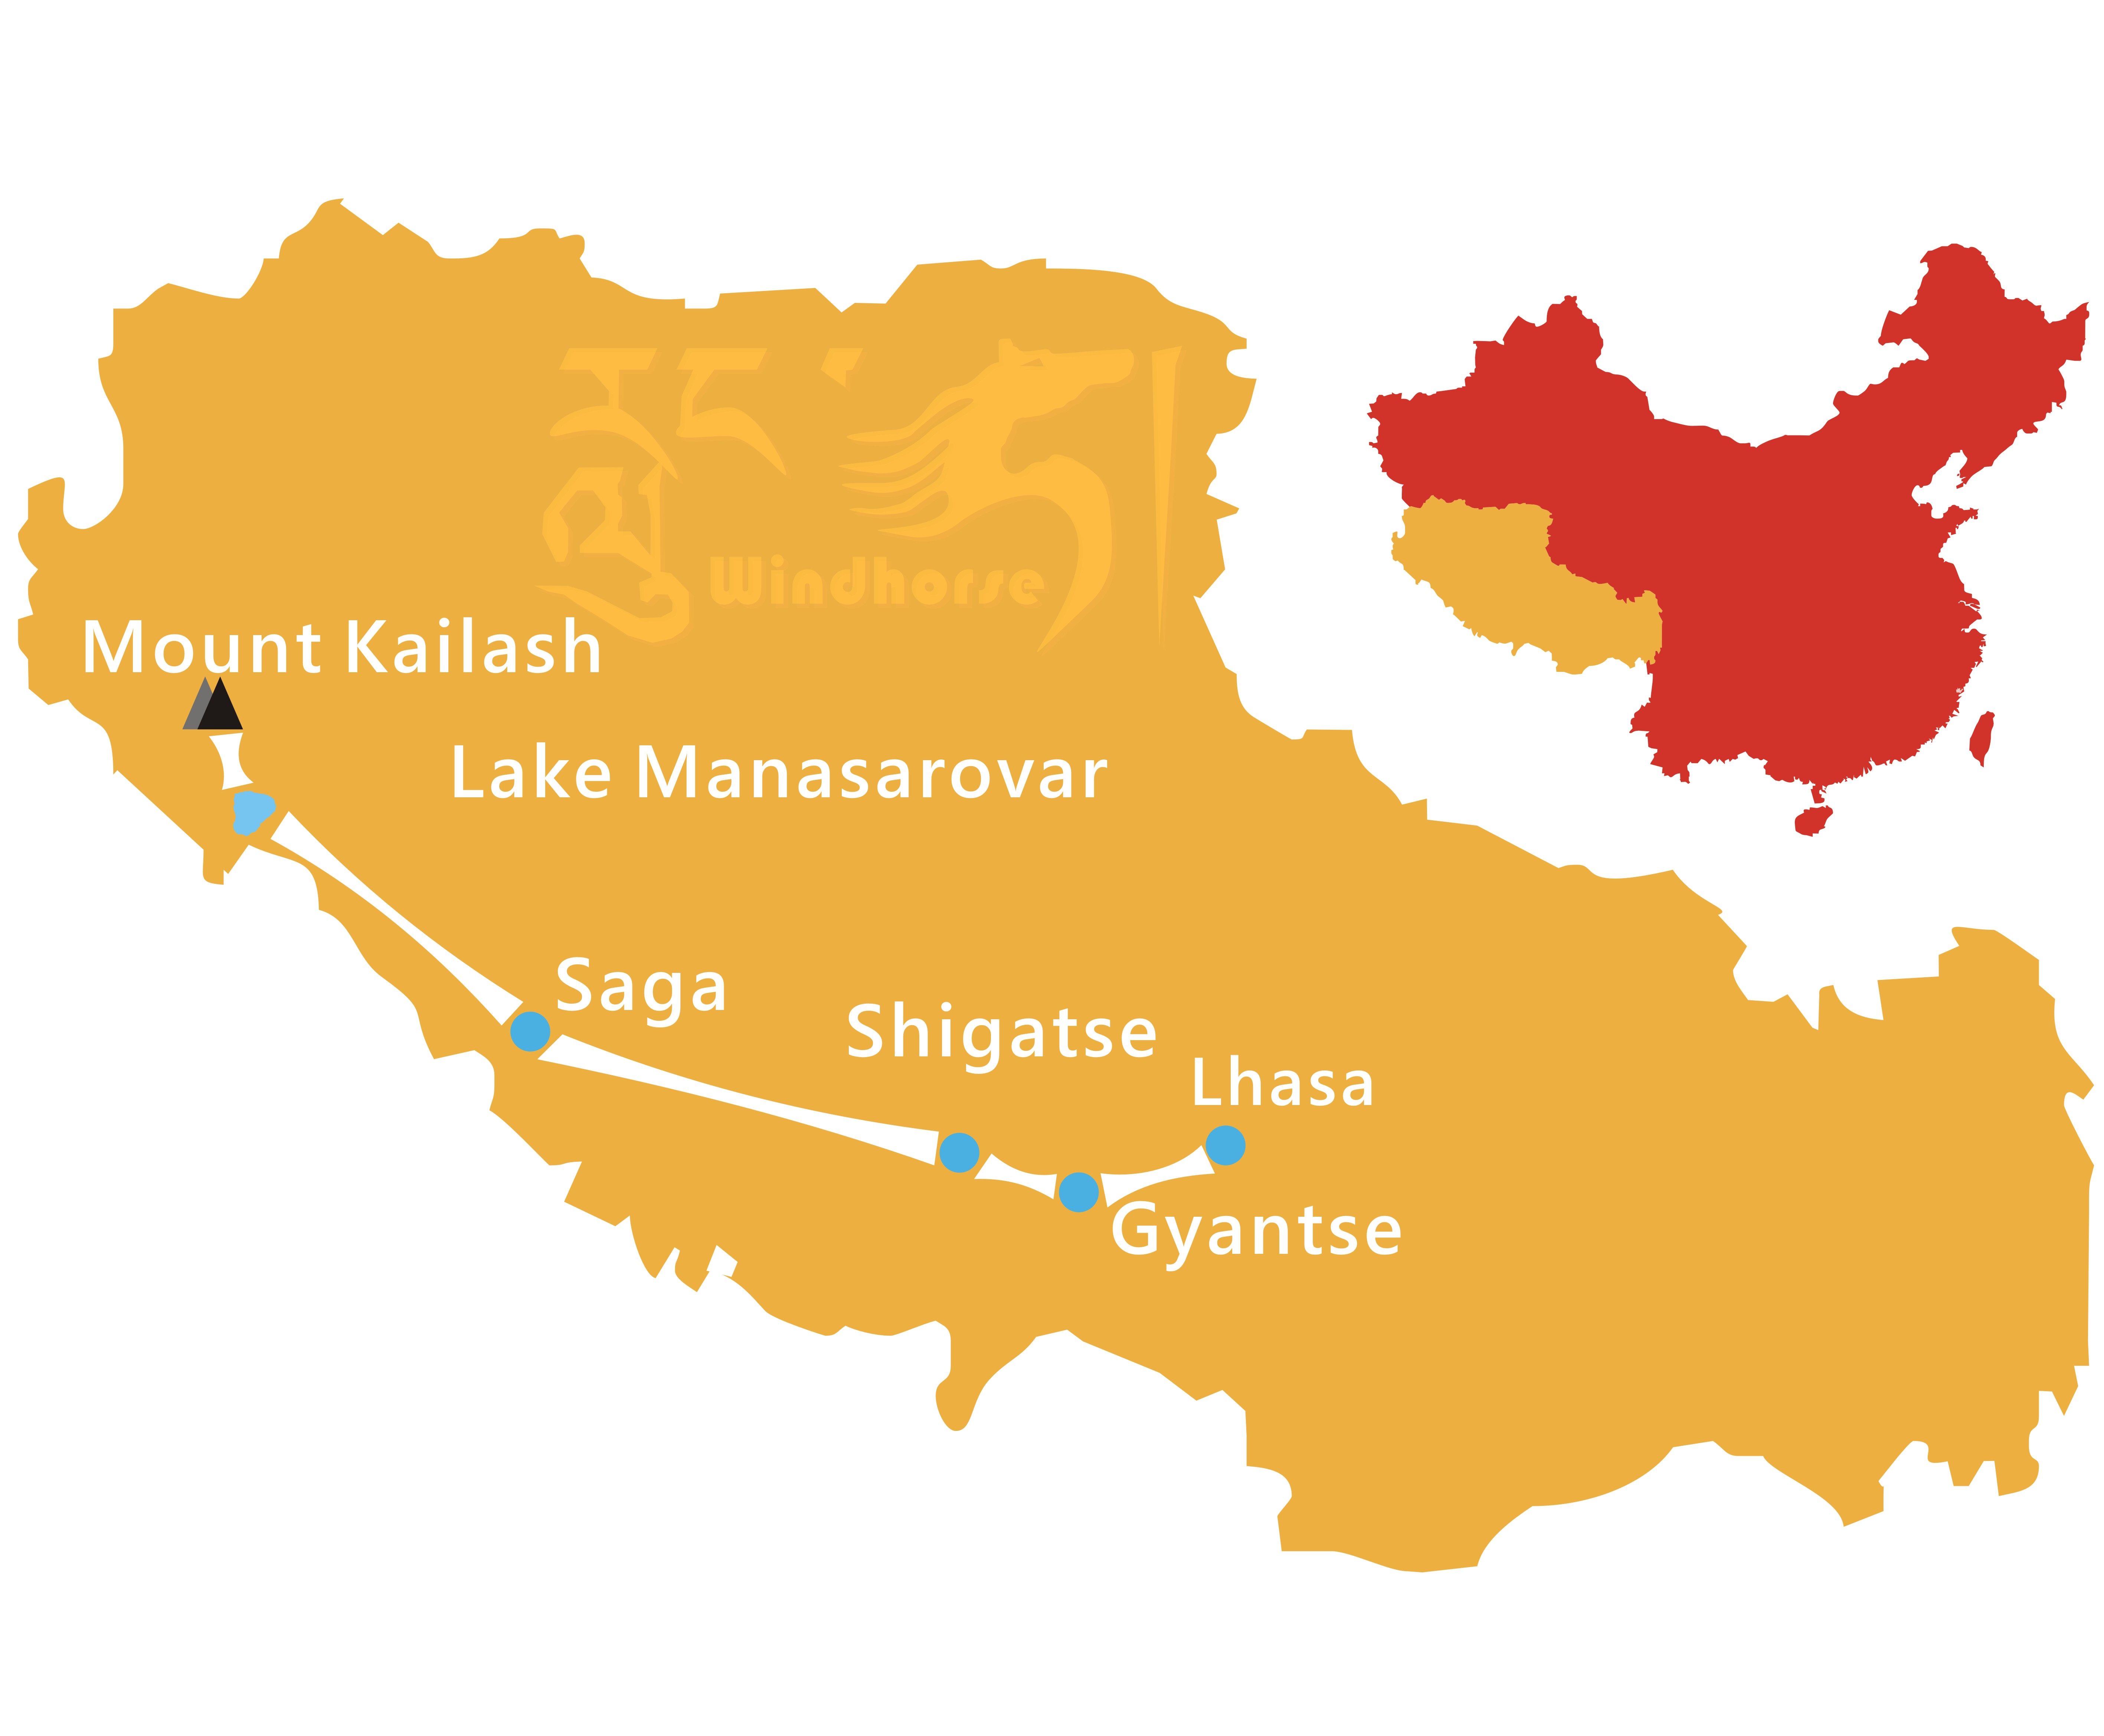 Lhasa Kailash Guge Kindom Tour Route